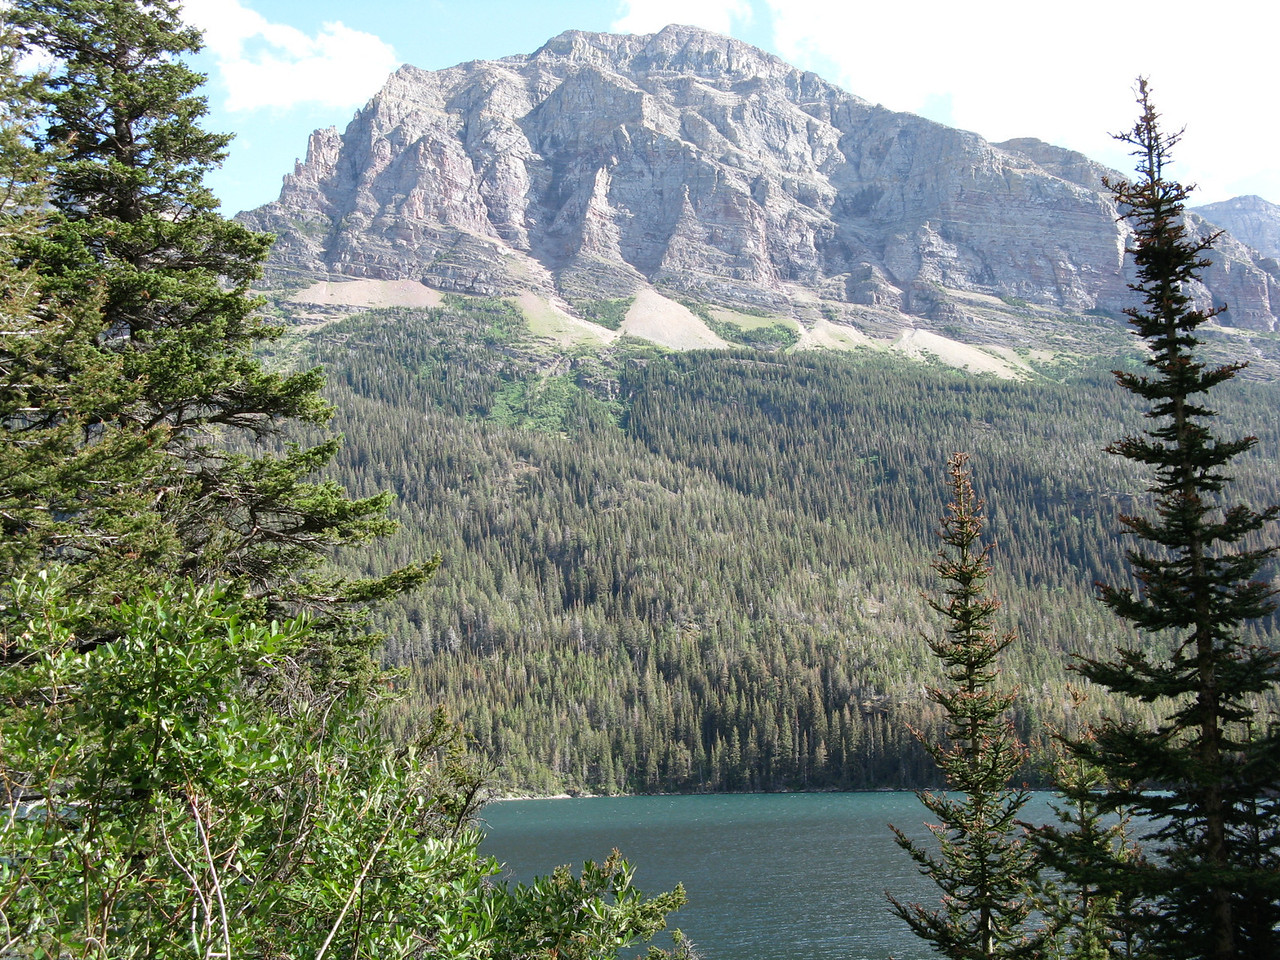 One of the mountains on the southside of Saint Mary Lake.